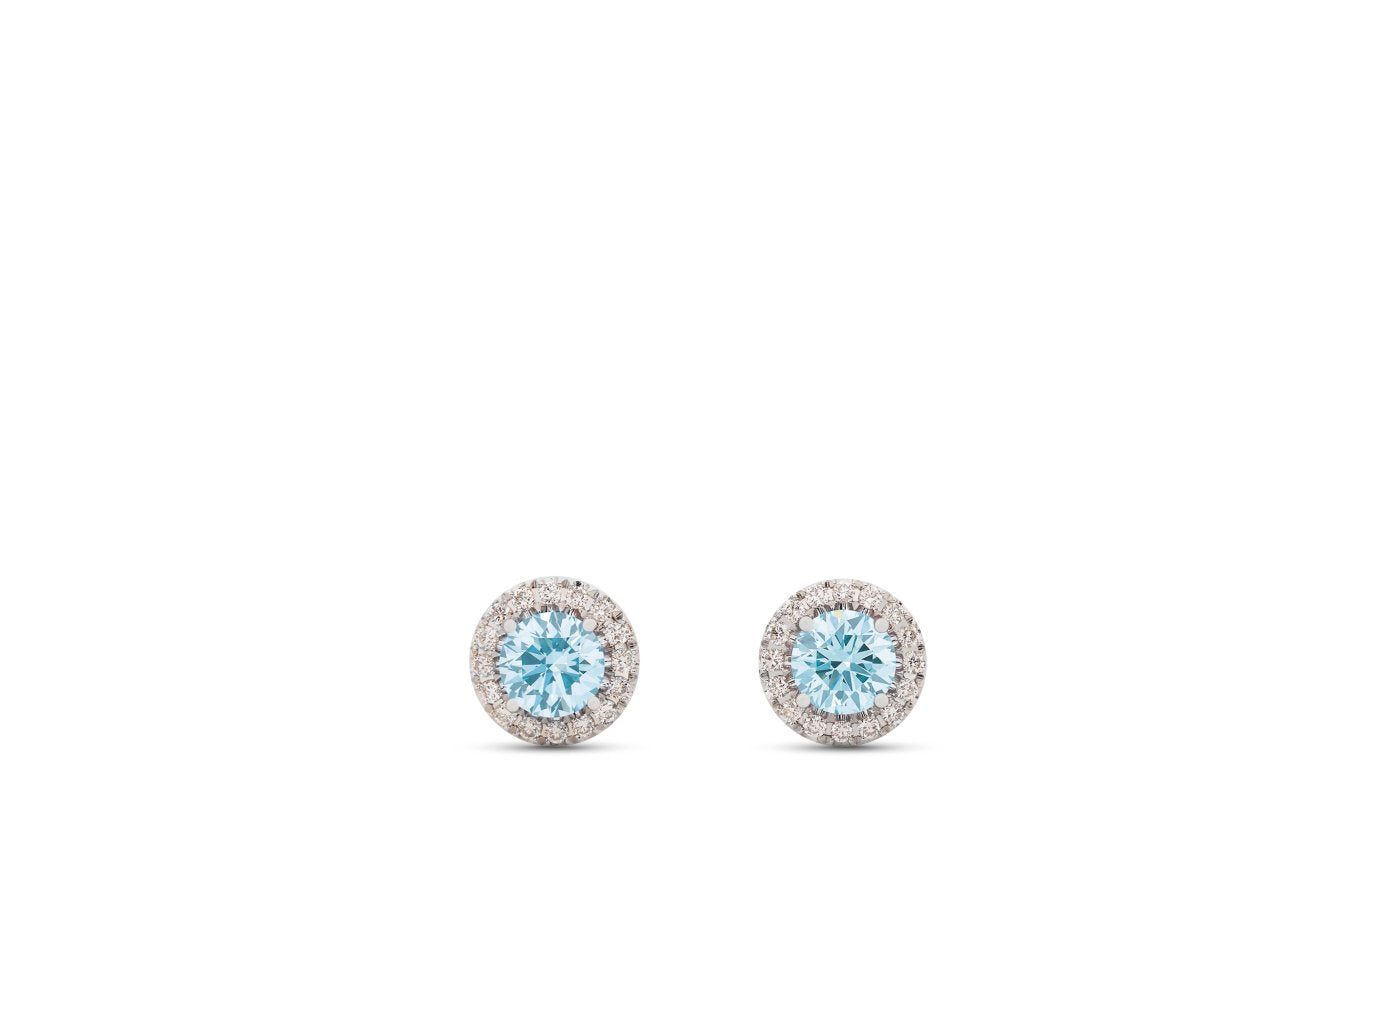 Front view of Halo 1/2 carat earrings with blue and white diamonds